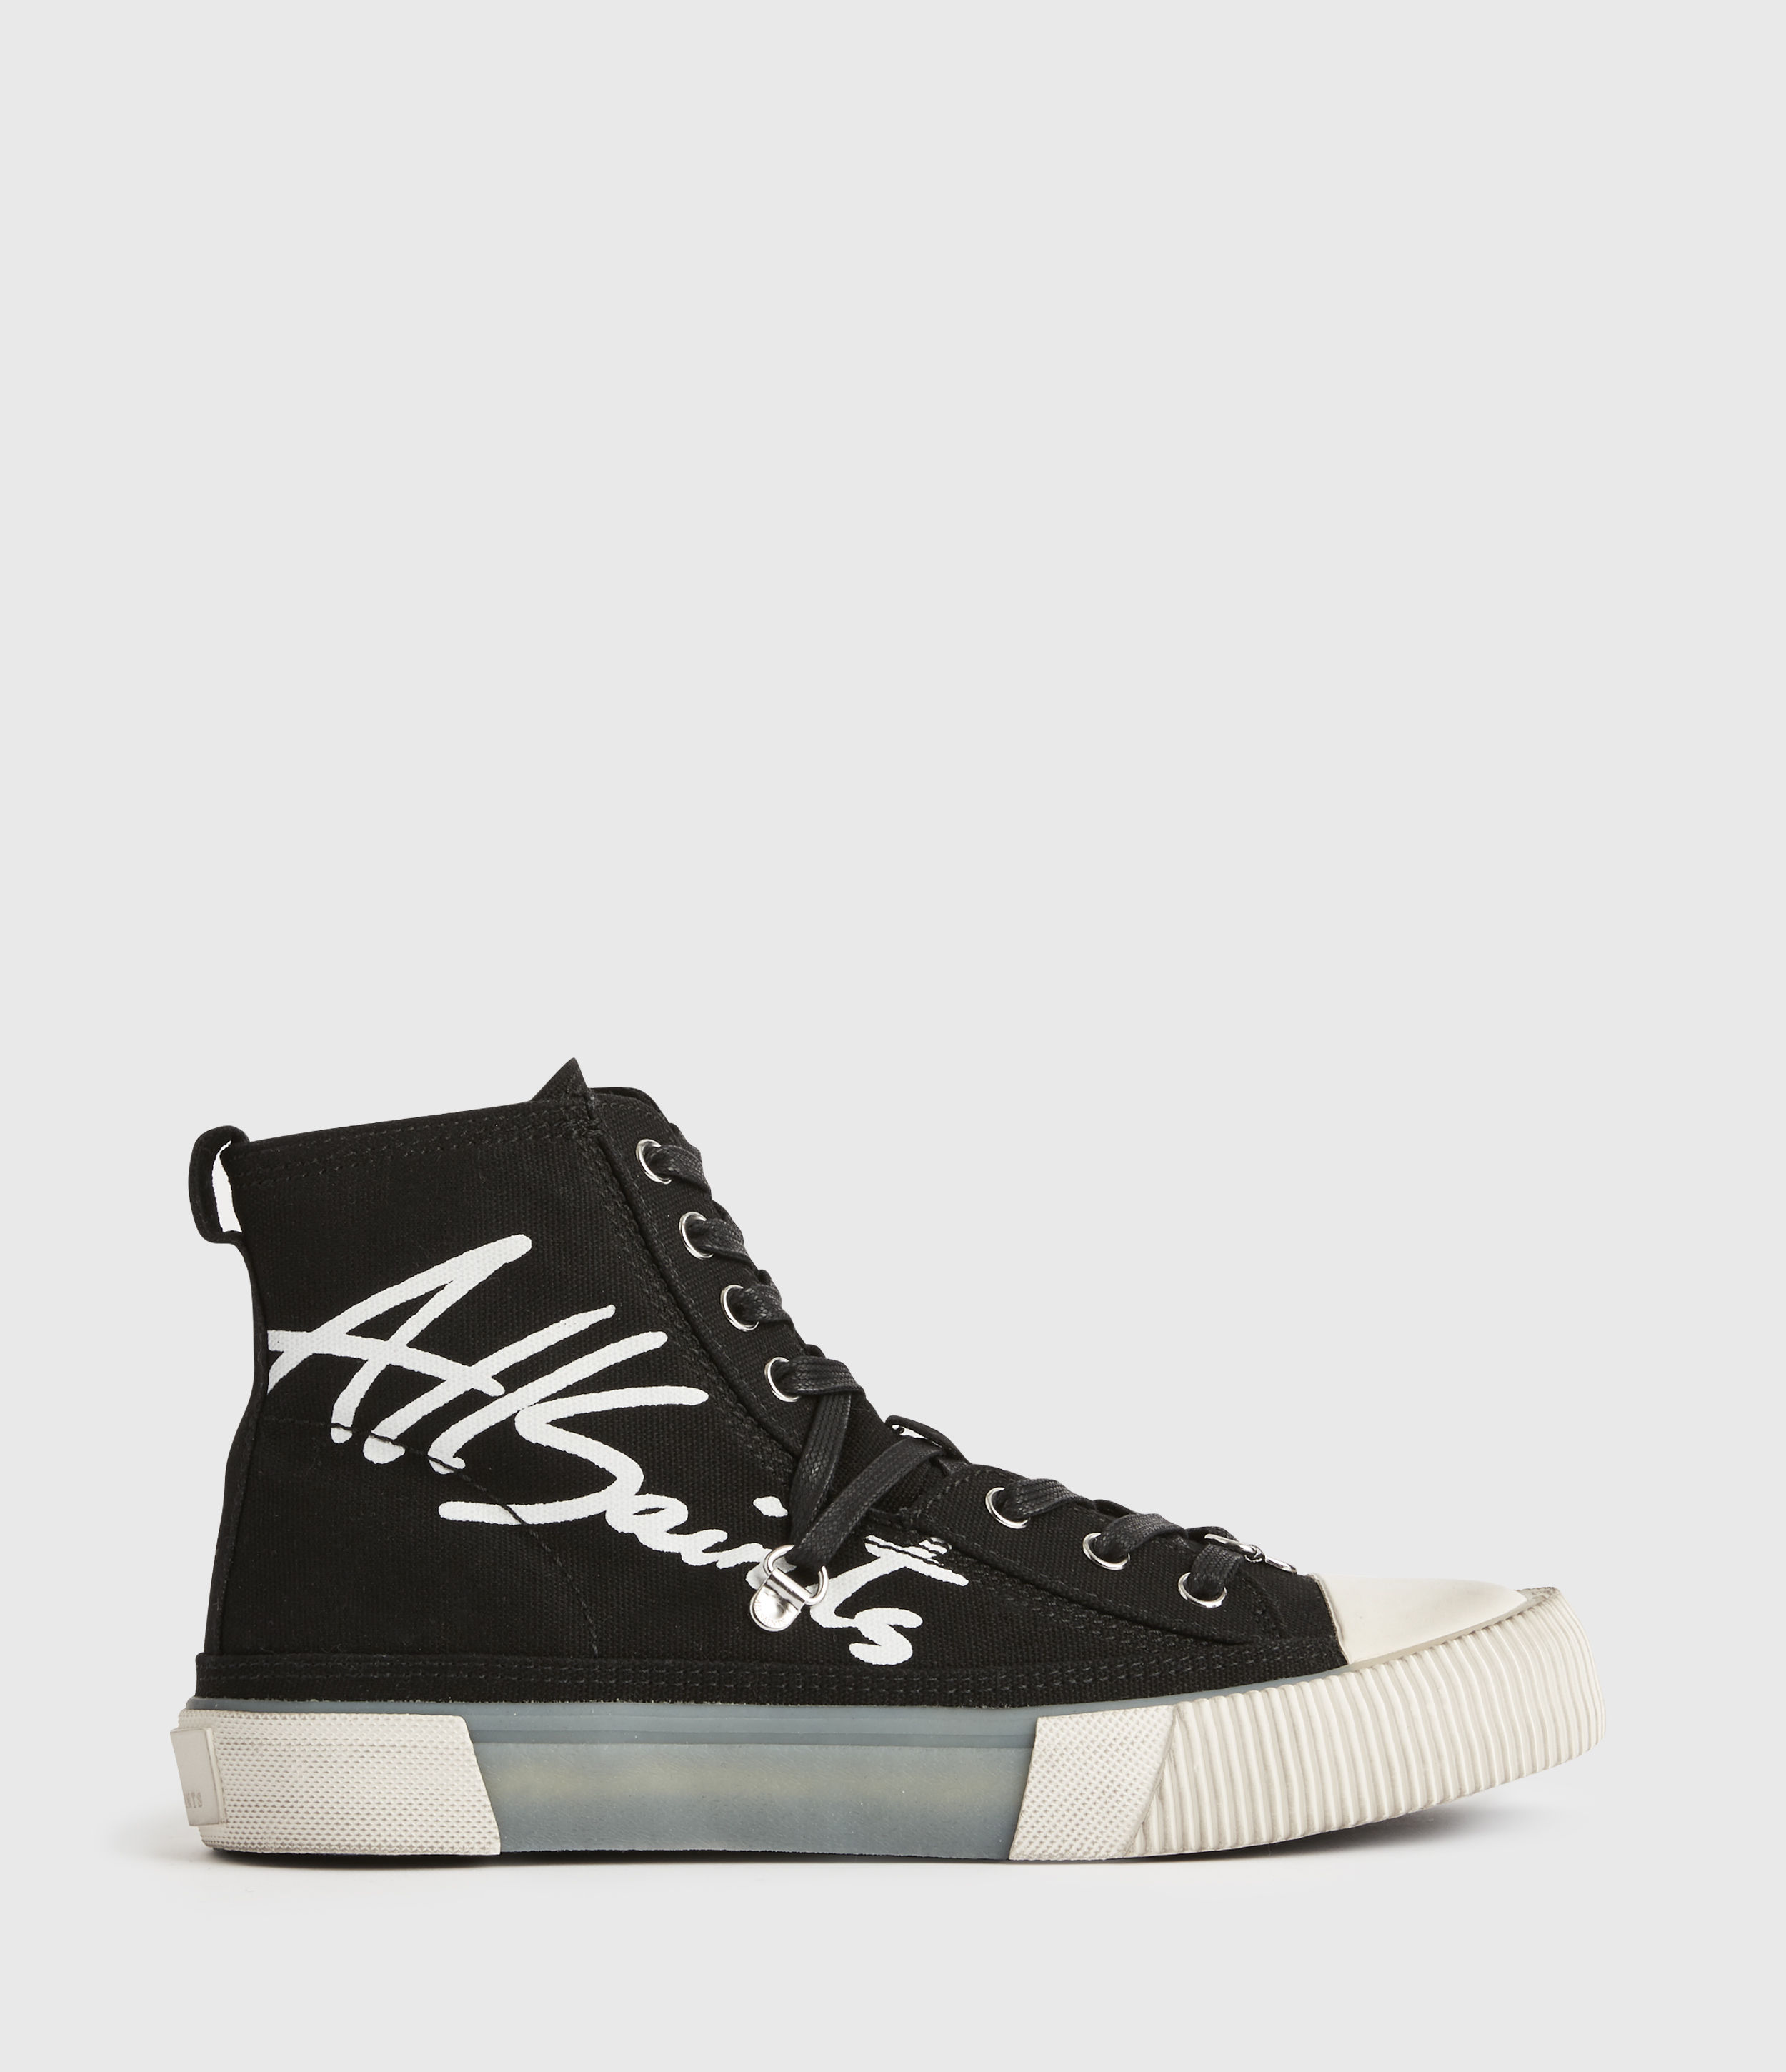 AllSaints Womens Elena Signature High Top Trainers, Black, Size: UK 6/US 8/EU 39